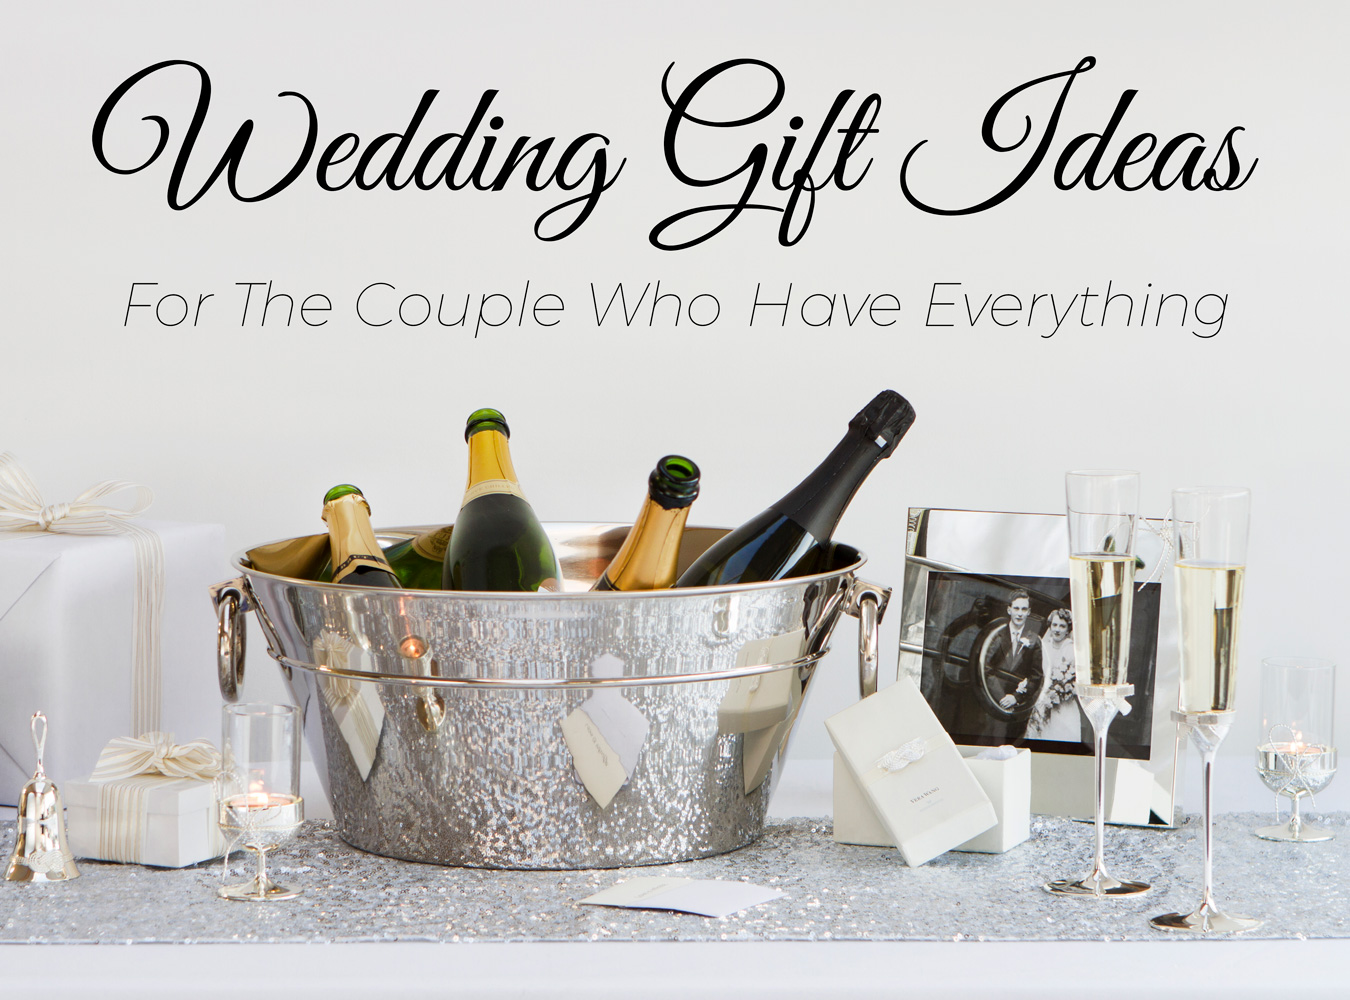 Wedding Gifts For Friends Who Have Everything: 5 Wedding Gift Ideas For The Couple Who Have Everything